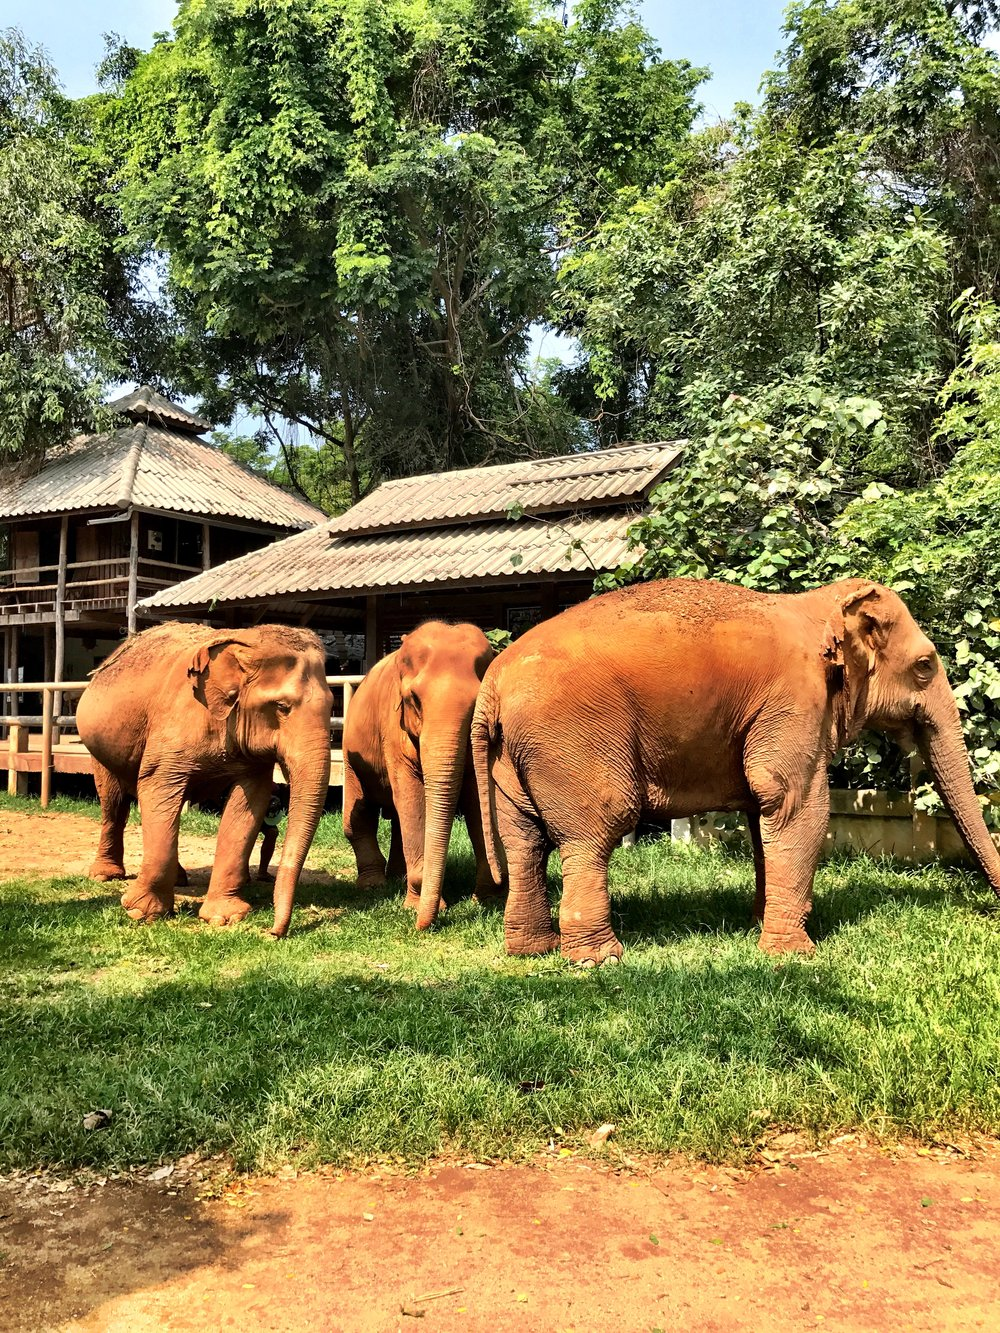 Spend a day at the Elephant Nature Park to feed, bathe and get to know rescued elephants